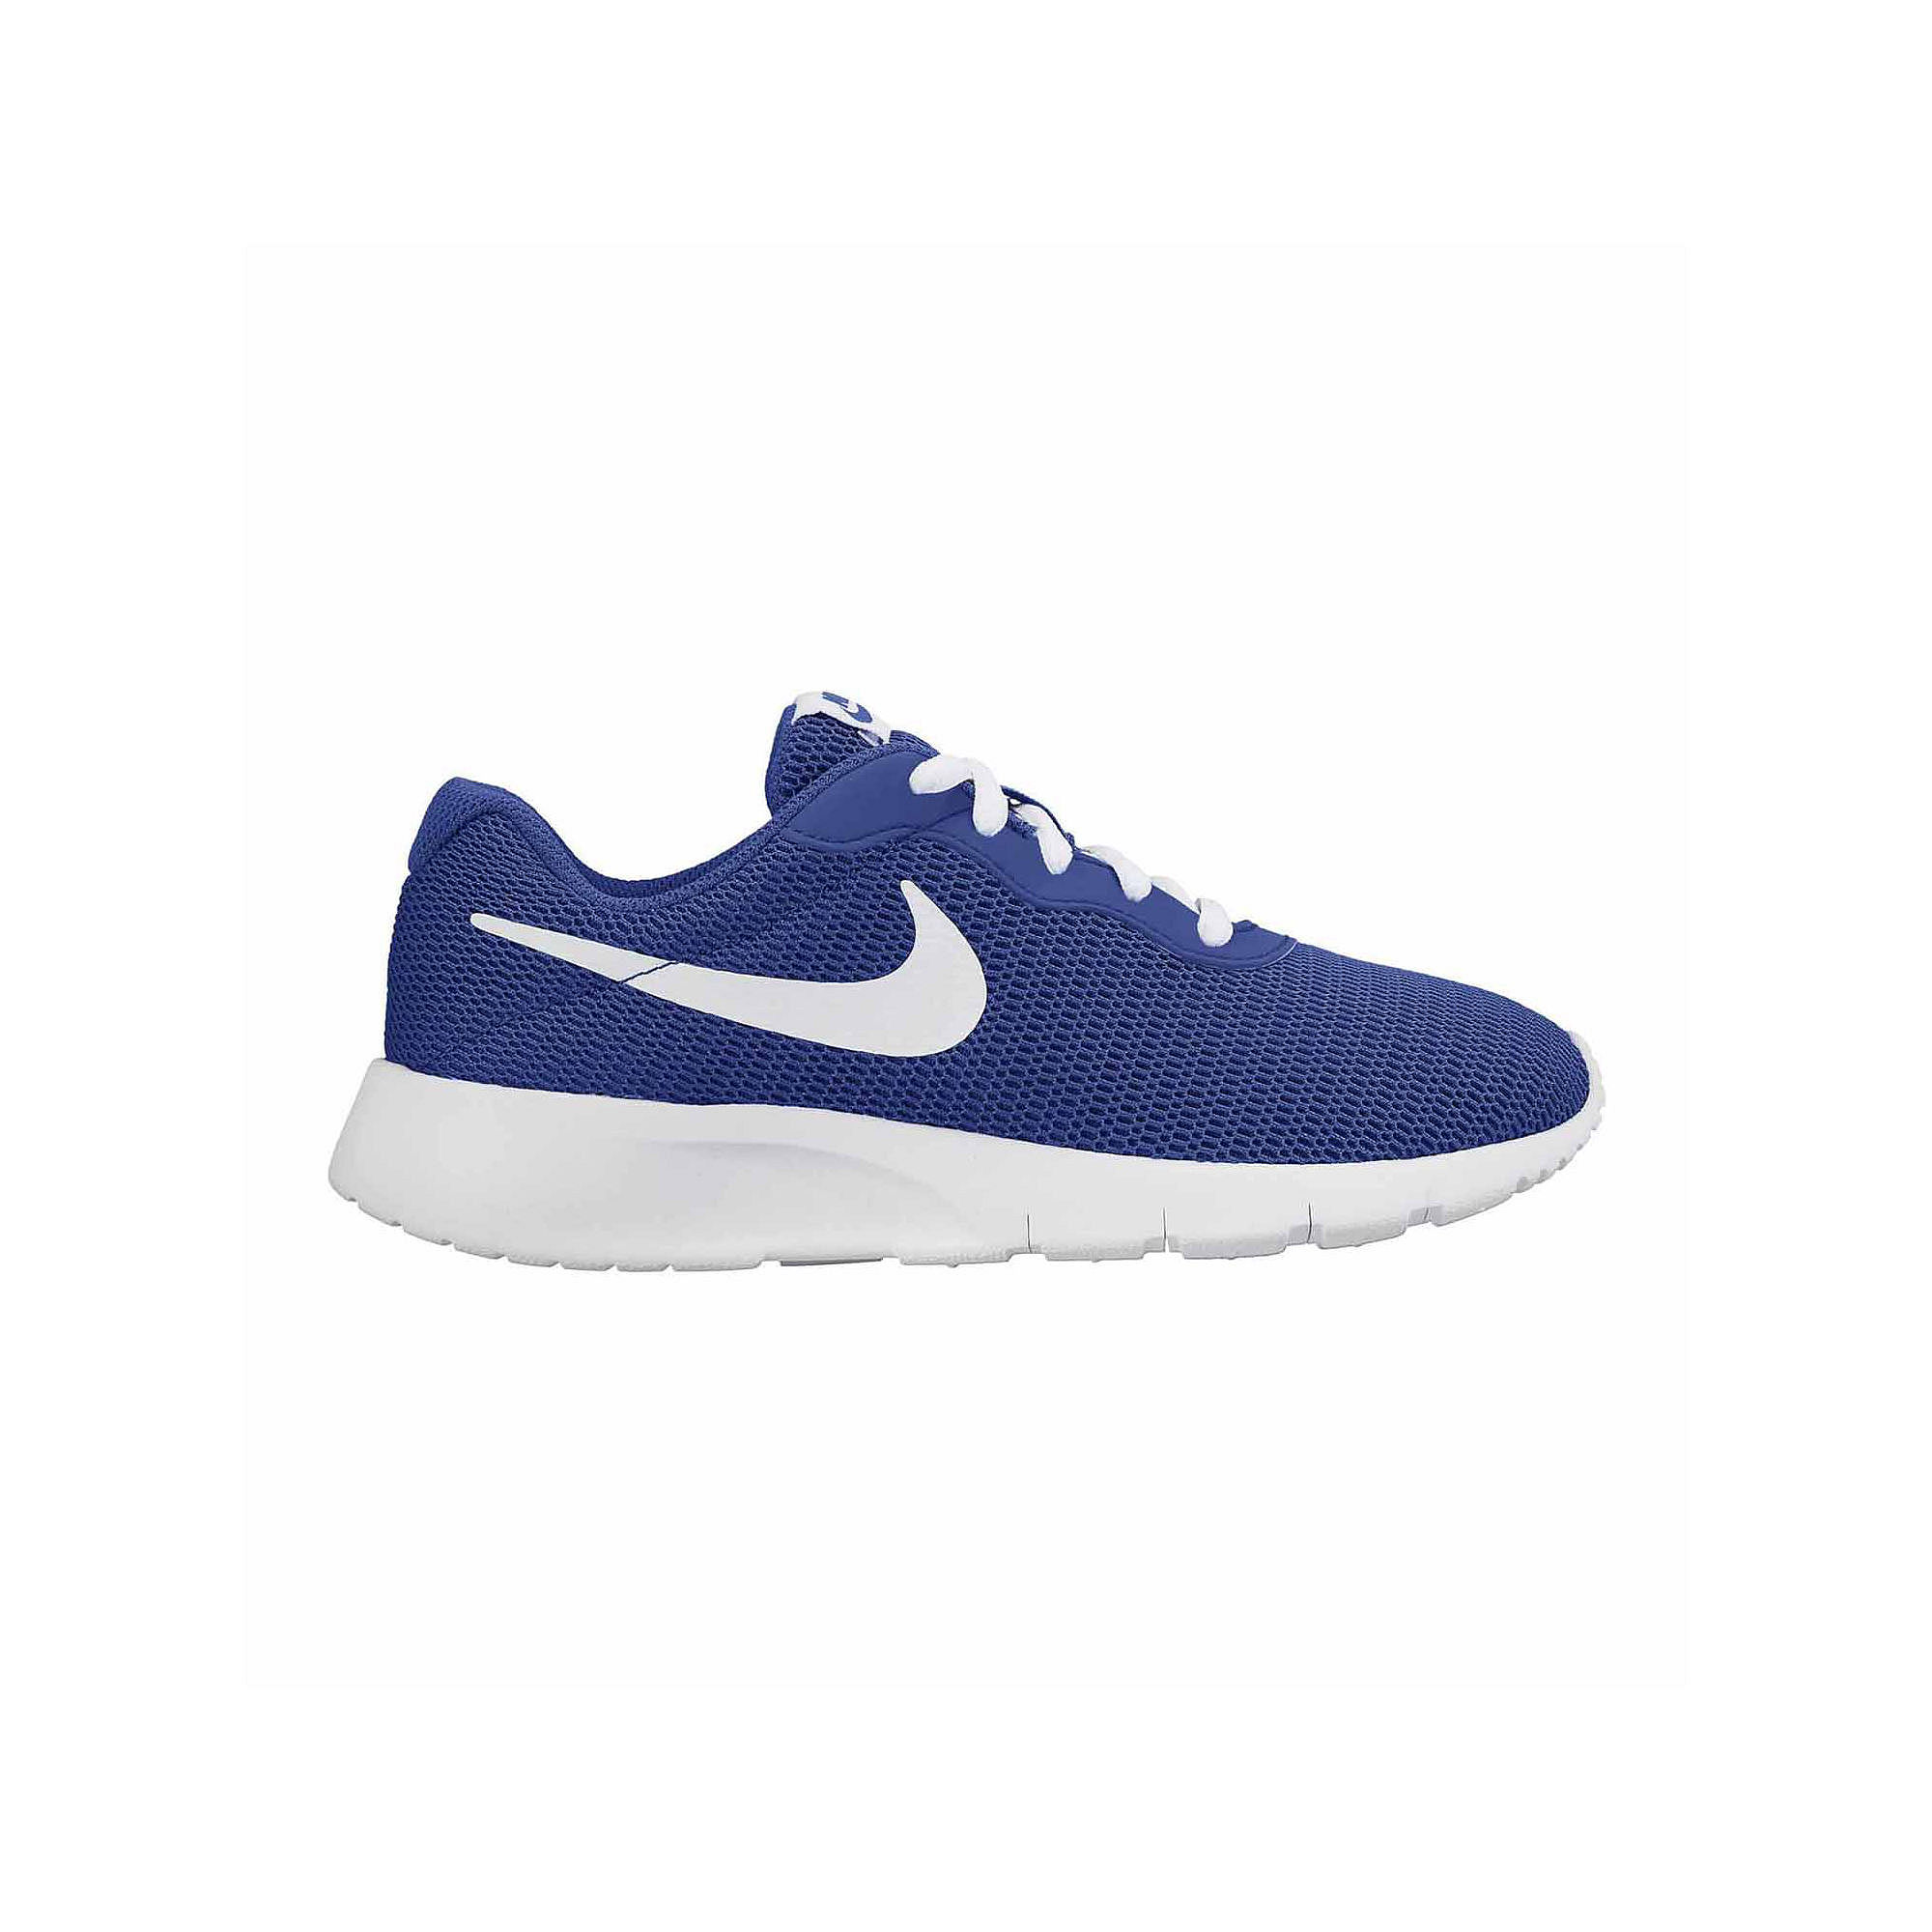 9a74686c70868 UPC 685068630293. ZOOM. UPC 685068630293 has following Product Name  Variations  Nike Boys  Tanjun Casual Sneakers from Finish Line ...